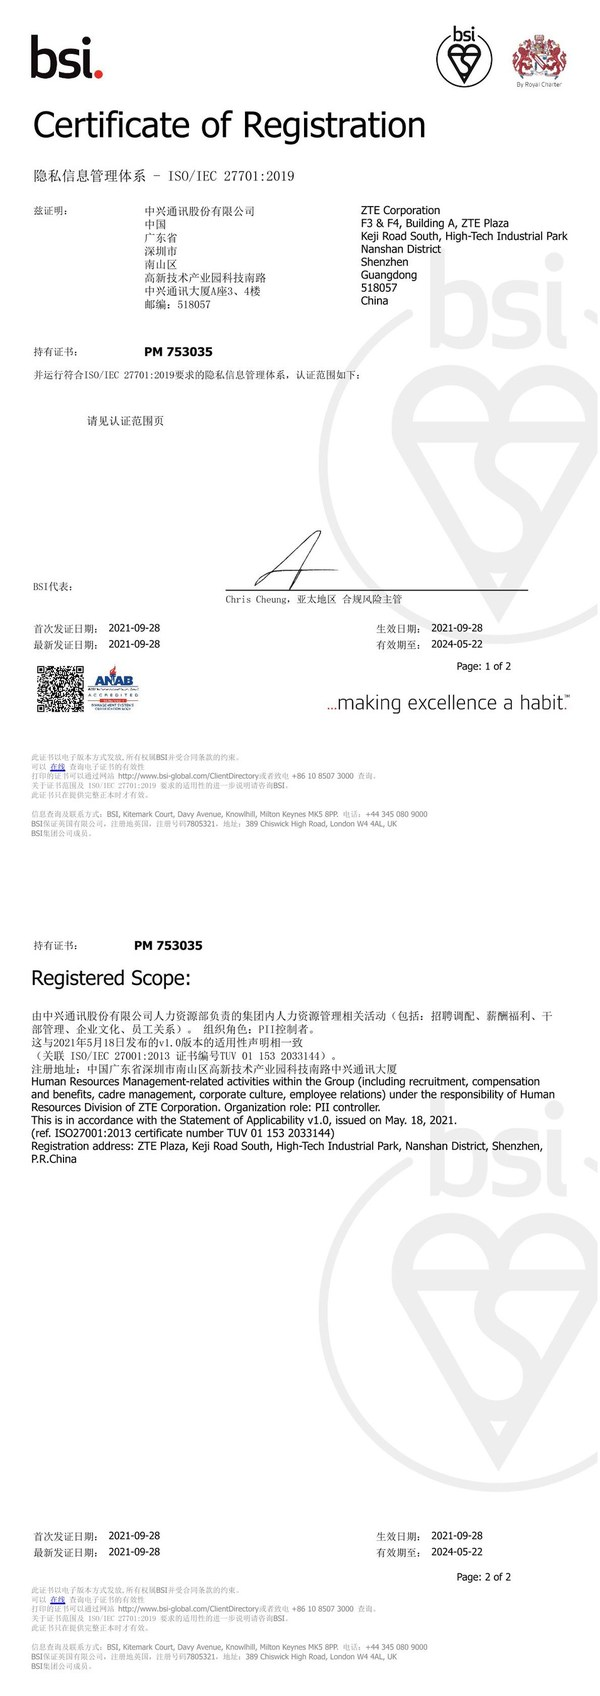 ZTE obtains ISO/IEC 27701:2019 certificate in human resource management